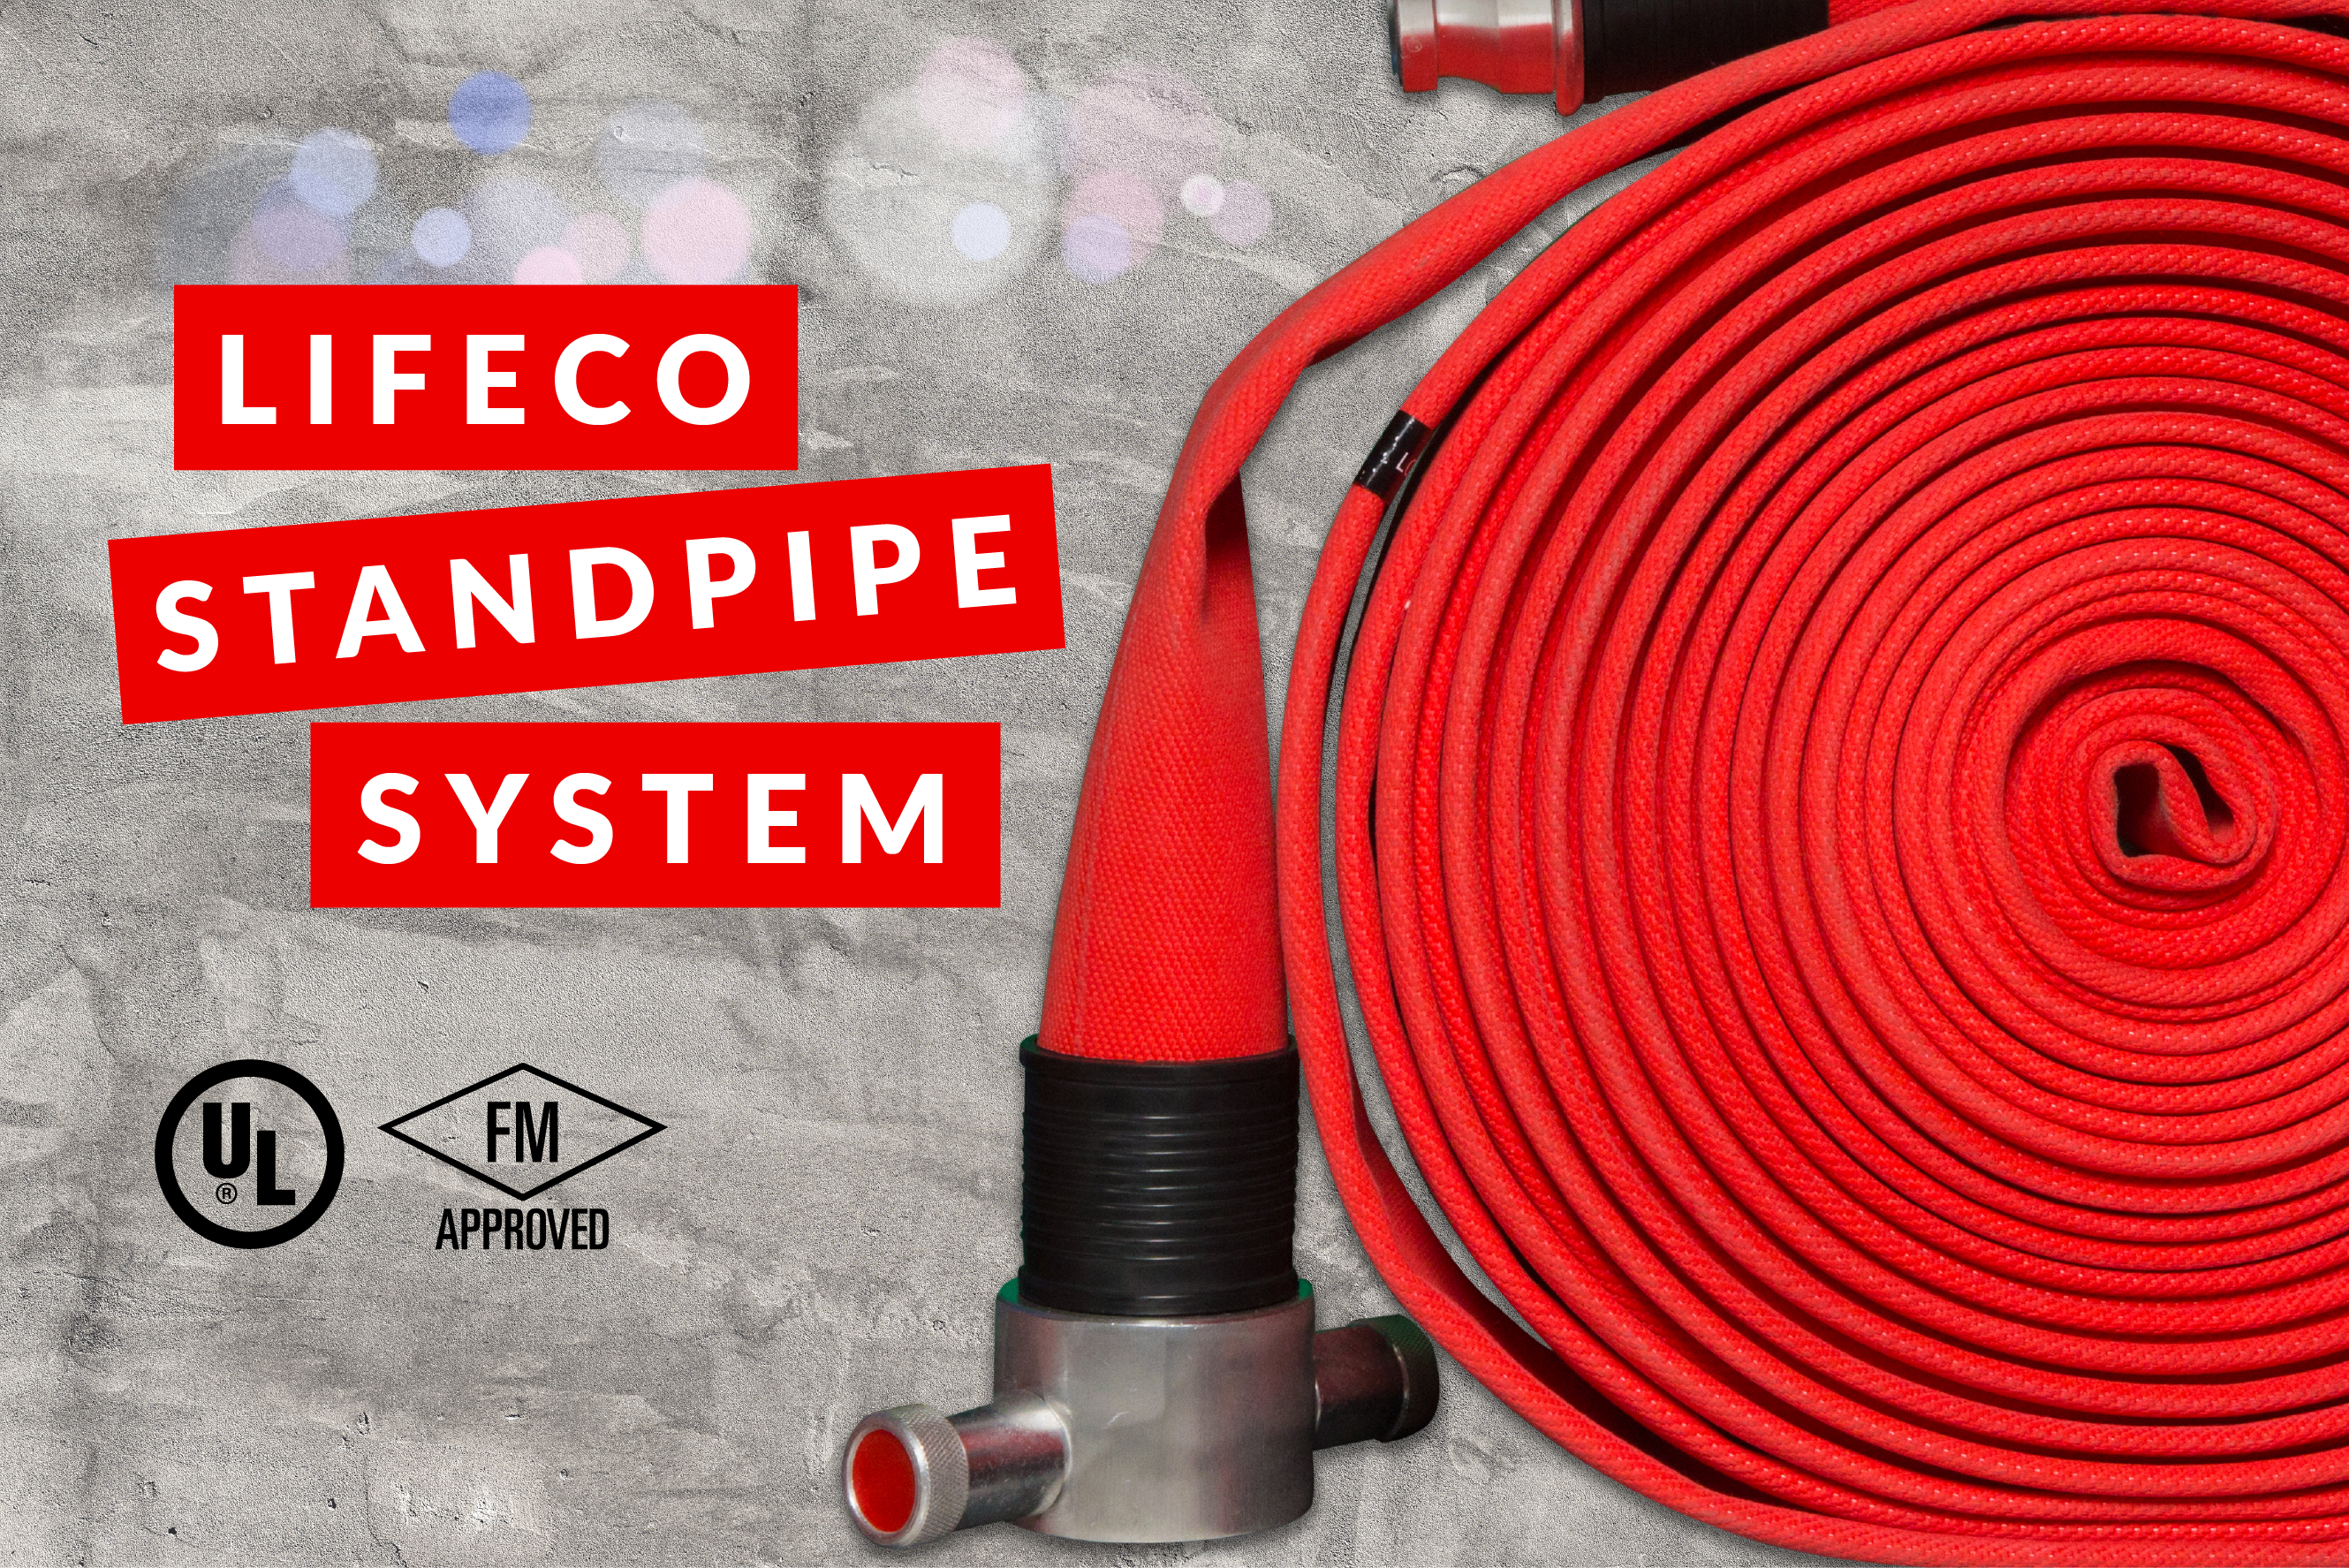 LIFECO's STANDPIPE SYSTEM!